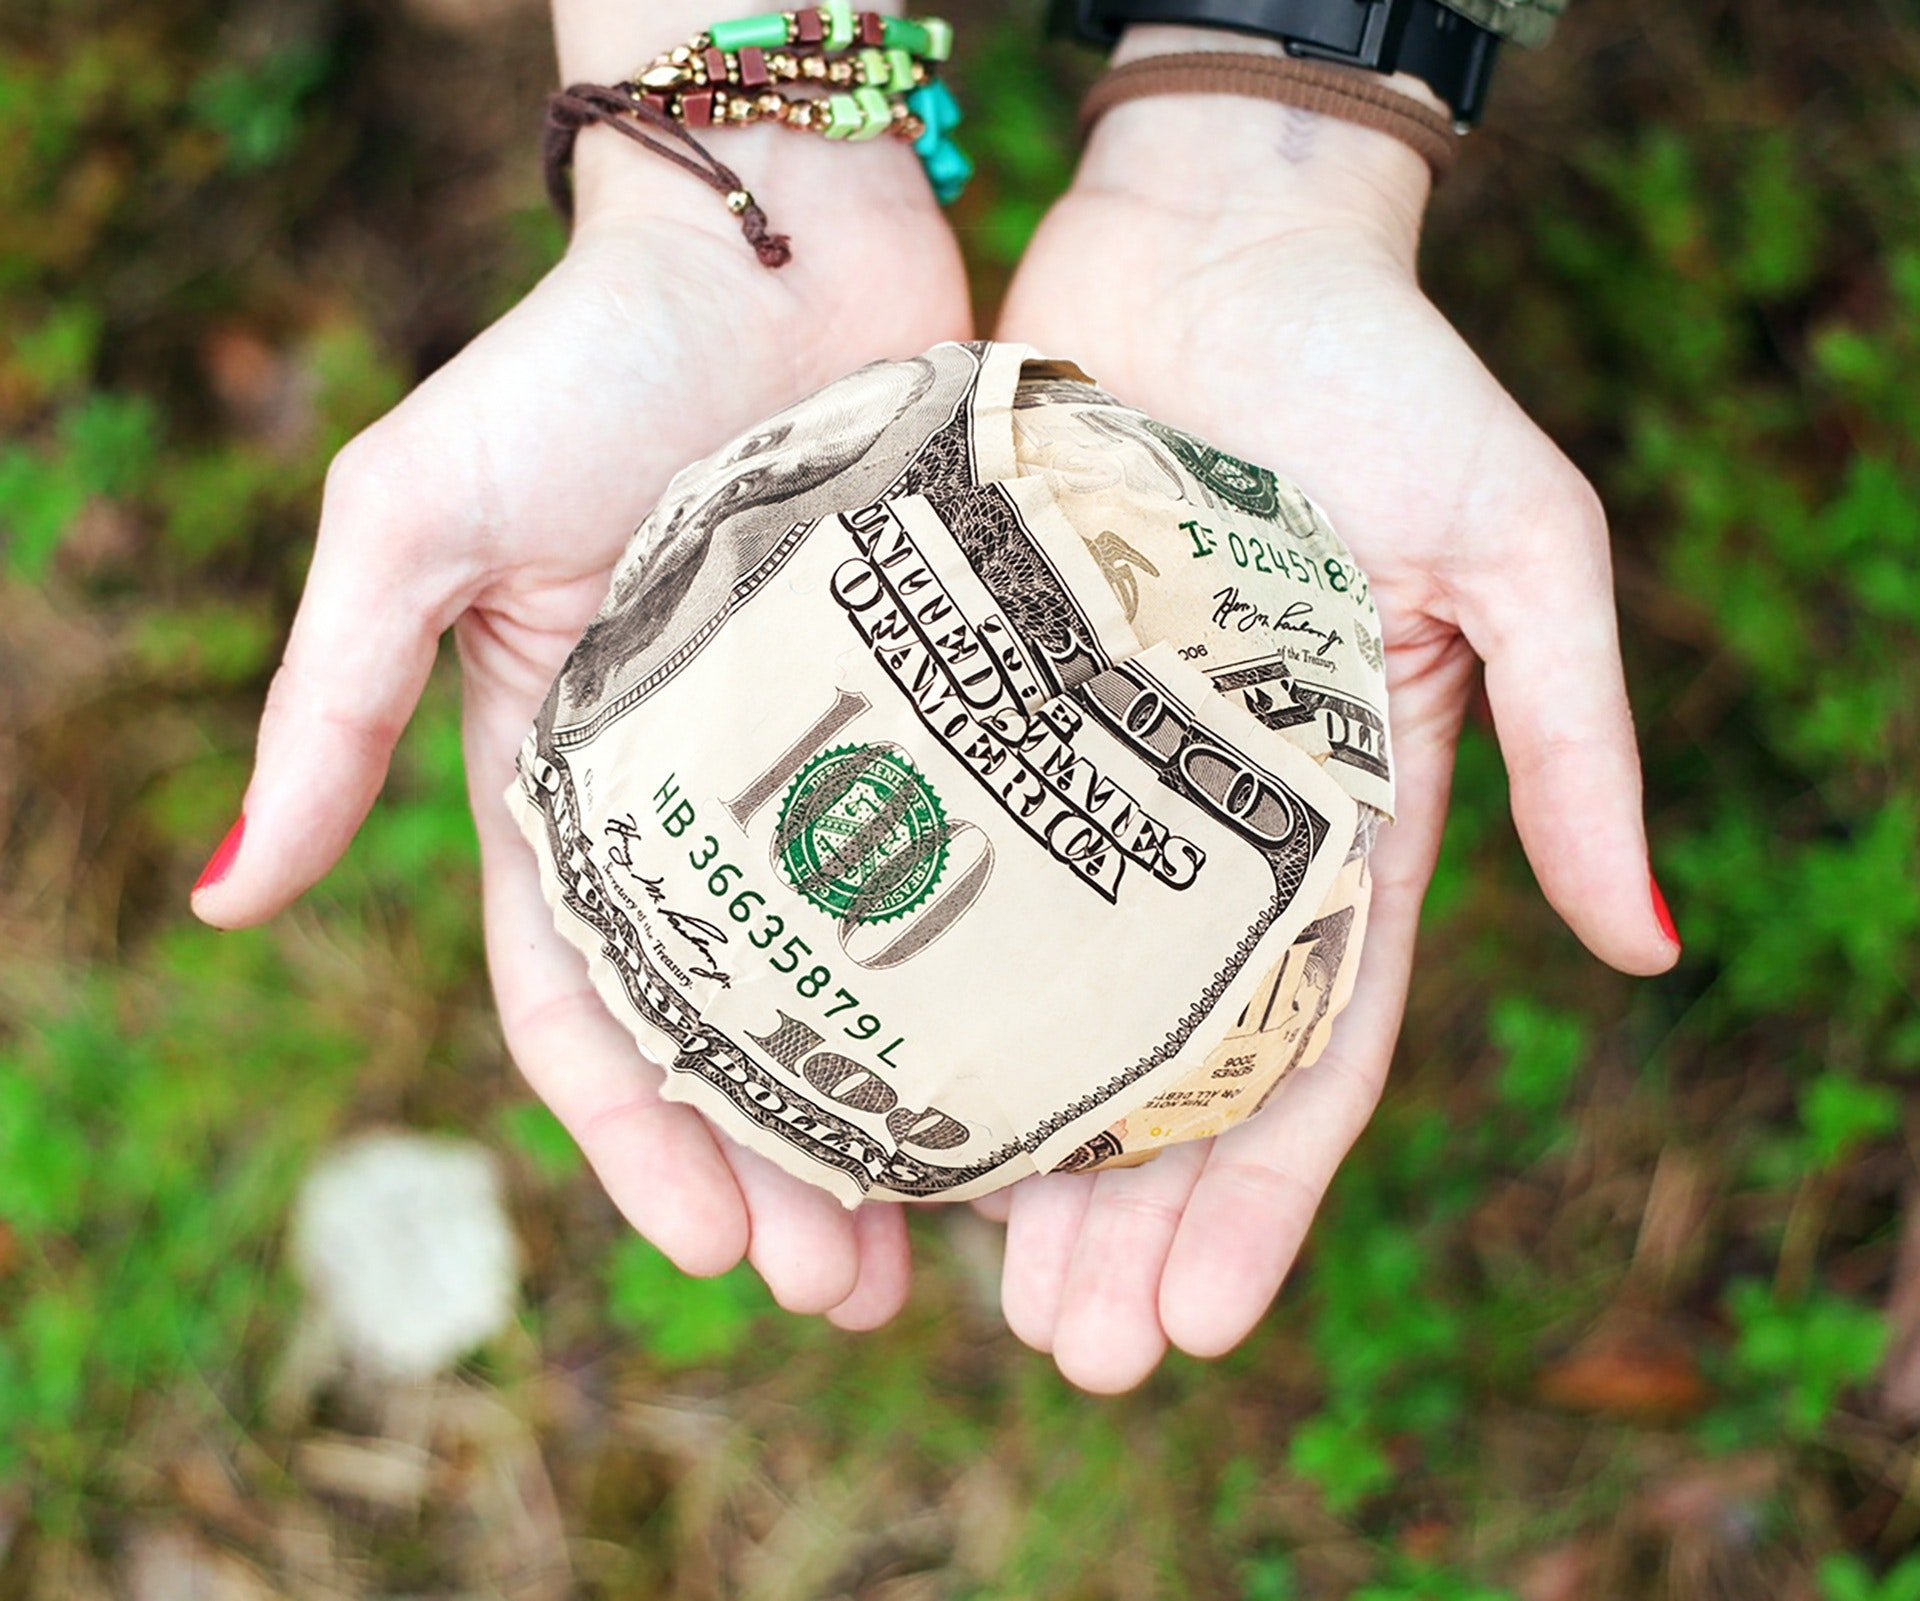 woman holding a ball made from dollars